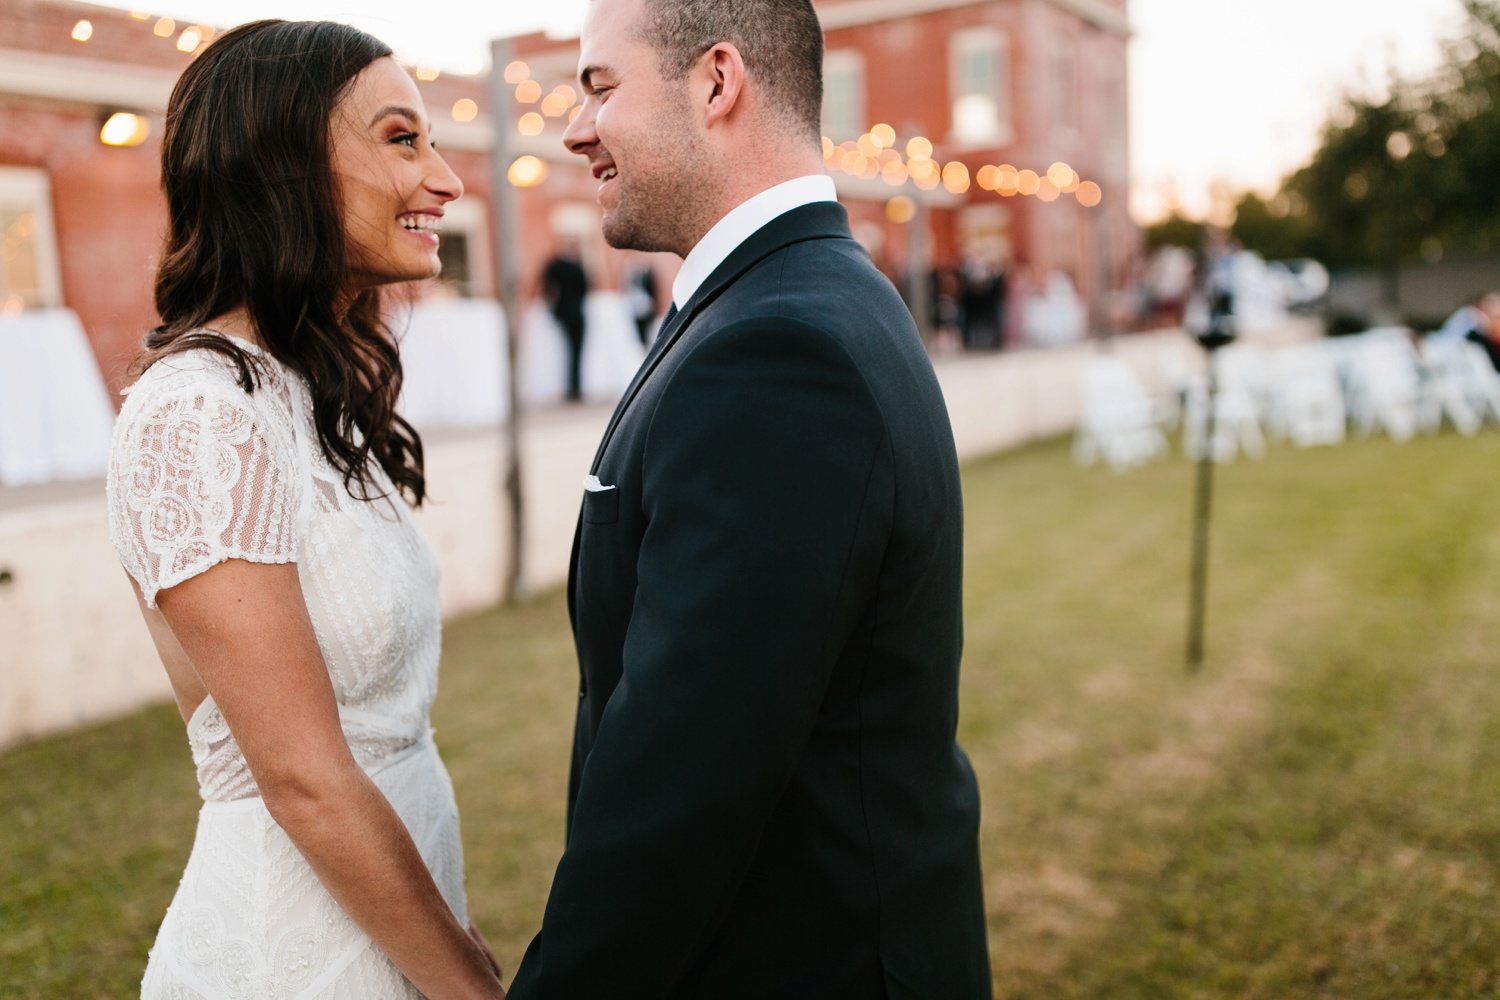 Kadee + Tyler | a raw, emotional wedding at the Filter Building on White Rock Lake in Dallas, TX by North Texas Wedding Photographer, Rachel Meagan Photography 191